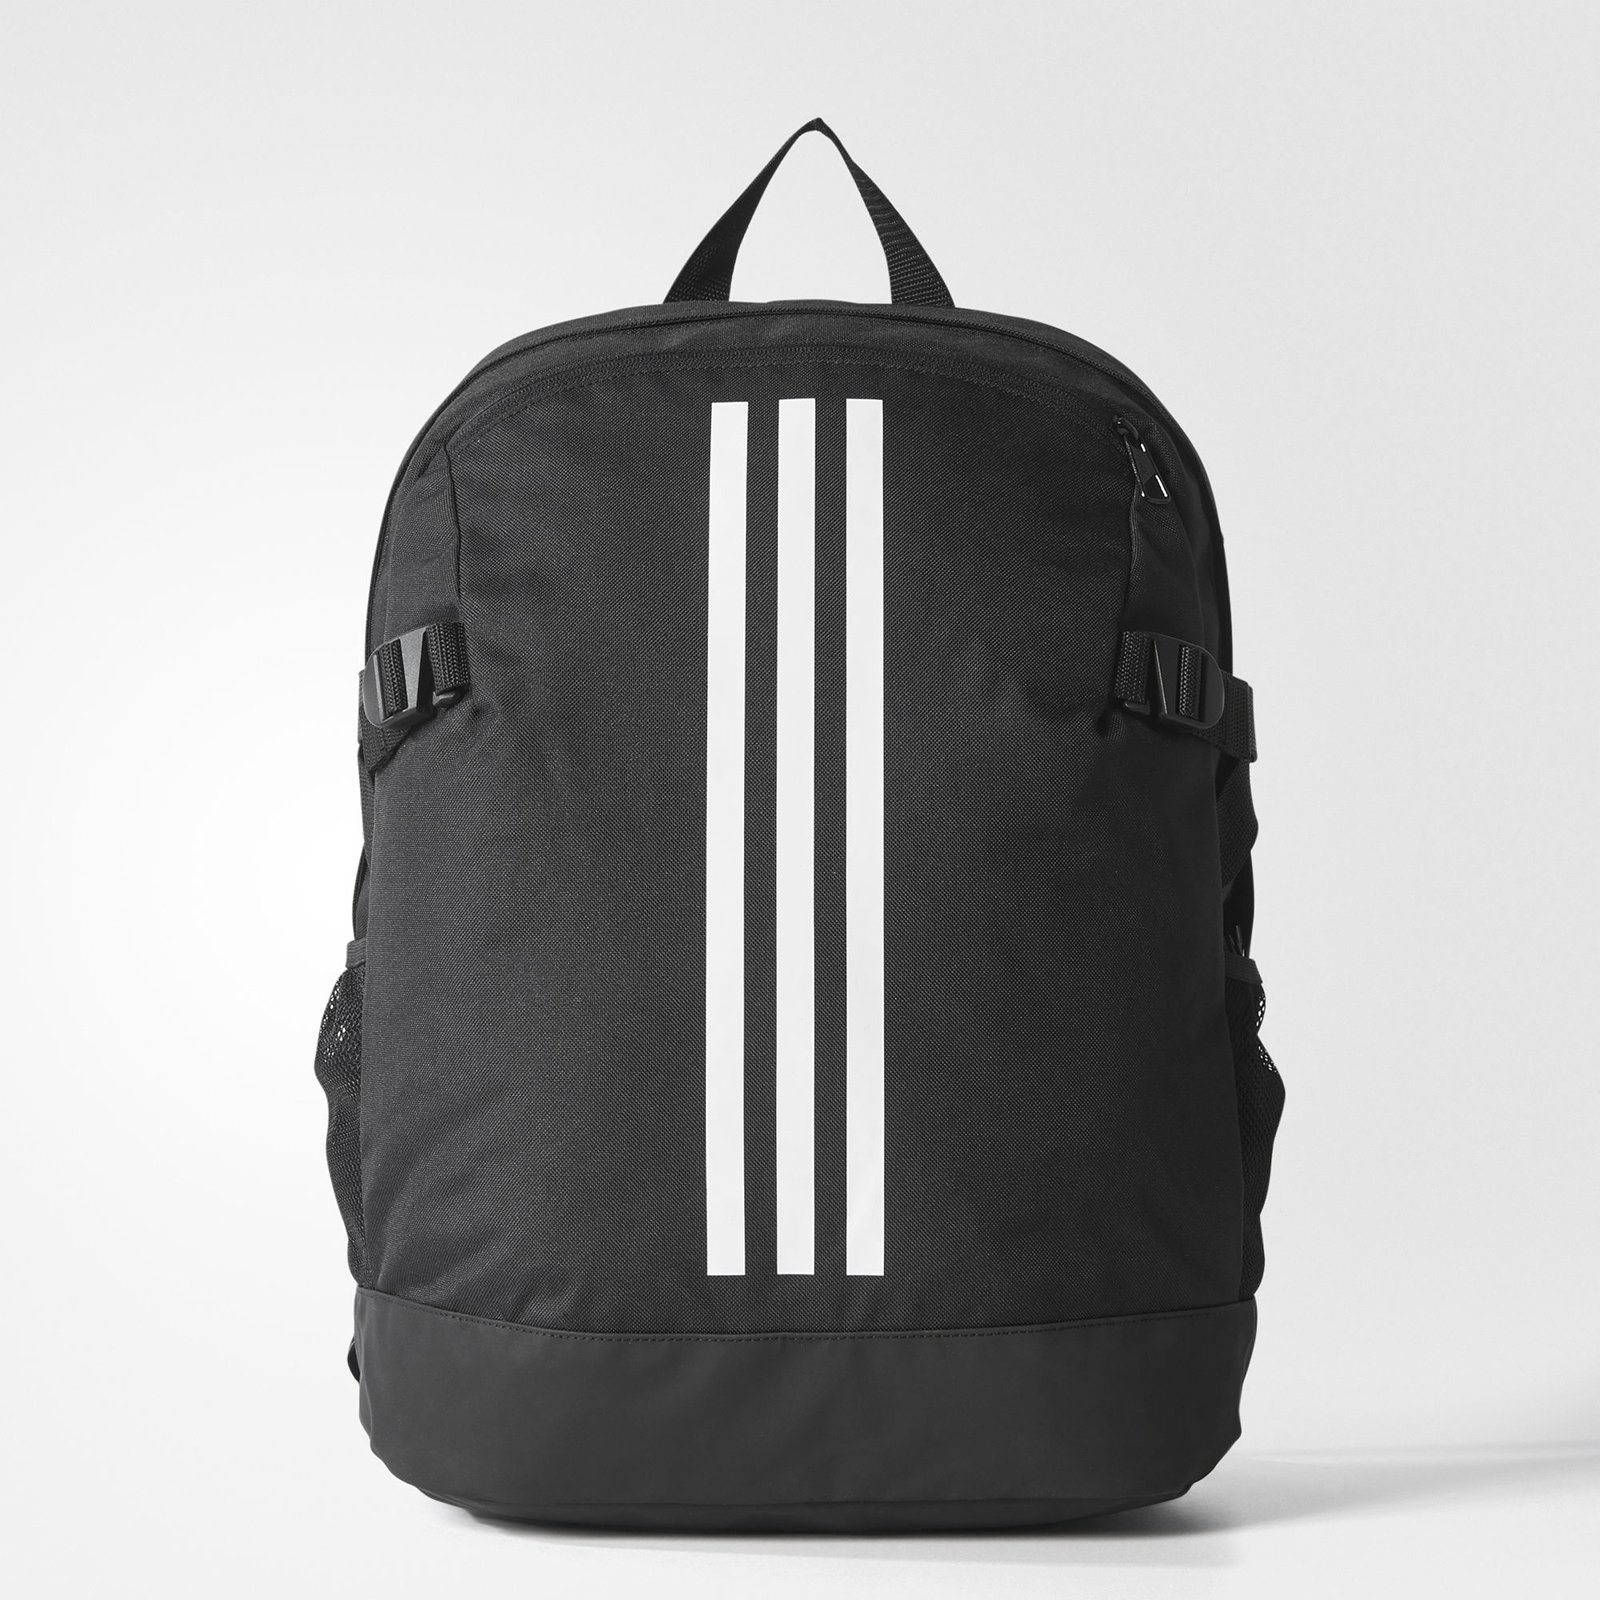 adidas BP Power 4 IV M Black 3-Stripes School Sports Backpack Daypack Bag  BR5864 d96b7322da455